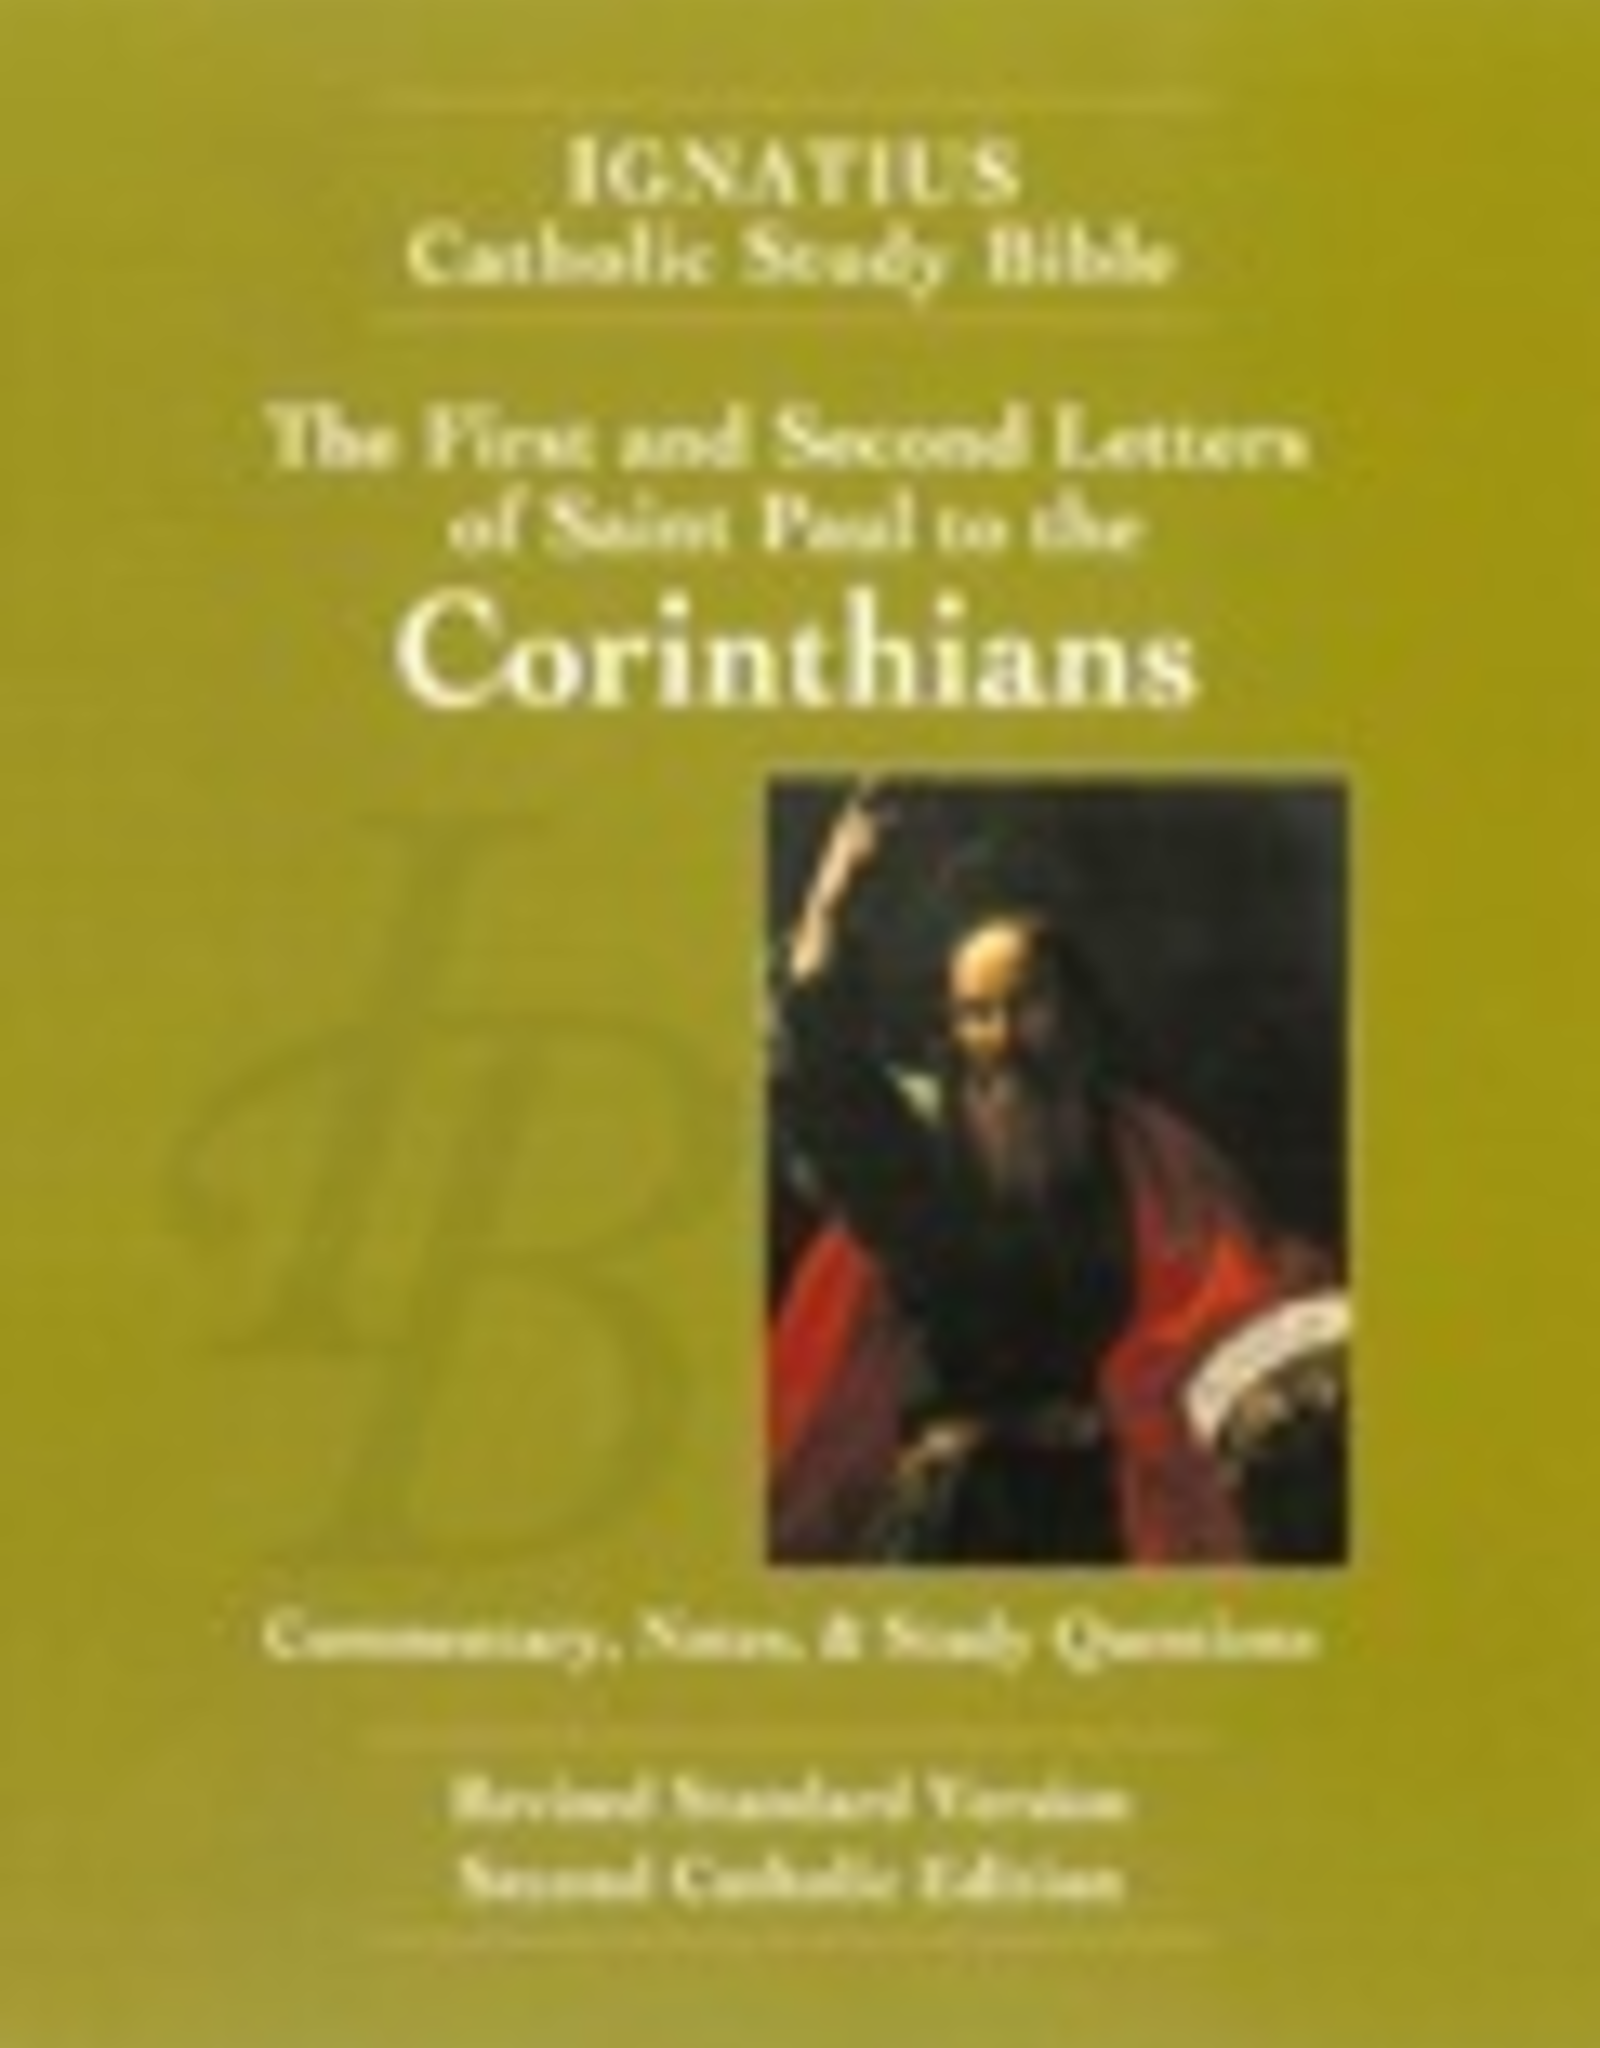 Ignatius Press The First and Second Letter of St. Paul to the Corinthians (2nd ed,):  Ignatius Catholic Study Bible, by Scott Hahn and Curtis Mitch (paperback)